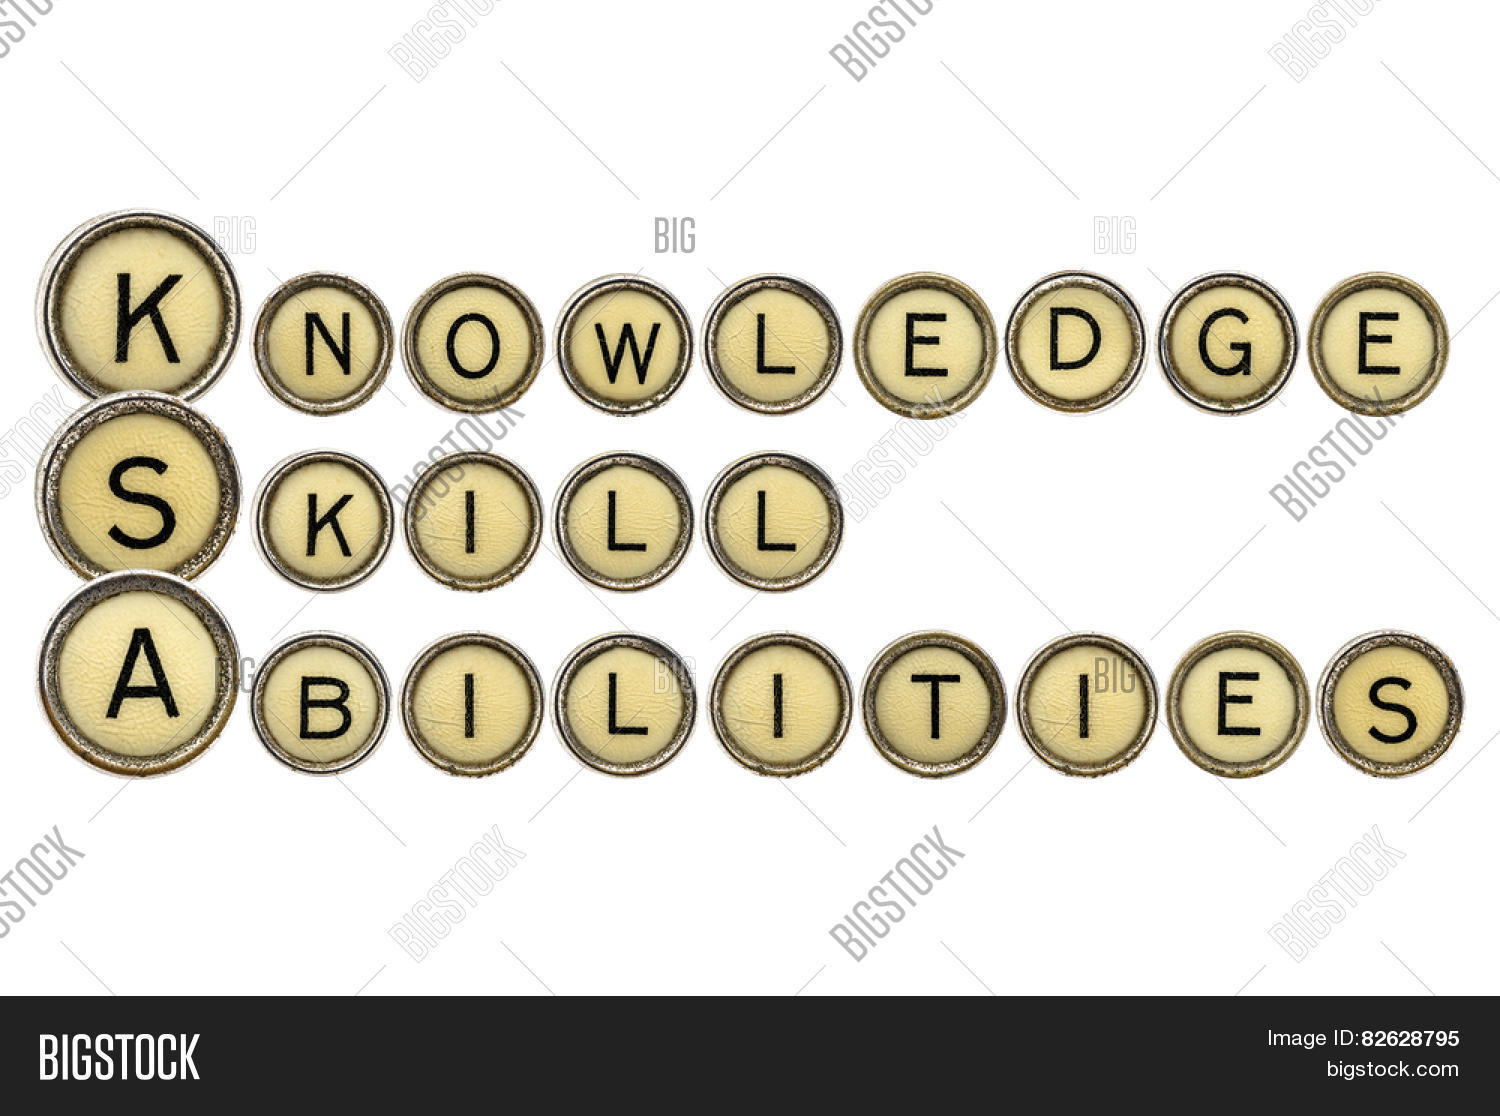 talent essay knowledge skills and abilities ksa is a concise essay  knowledge skills and abilities ksa is a concise essay about knowledge skills and abilities ksa is